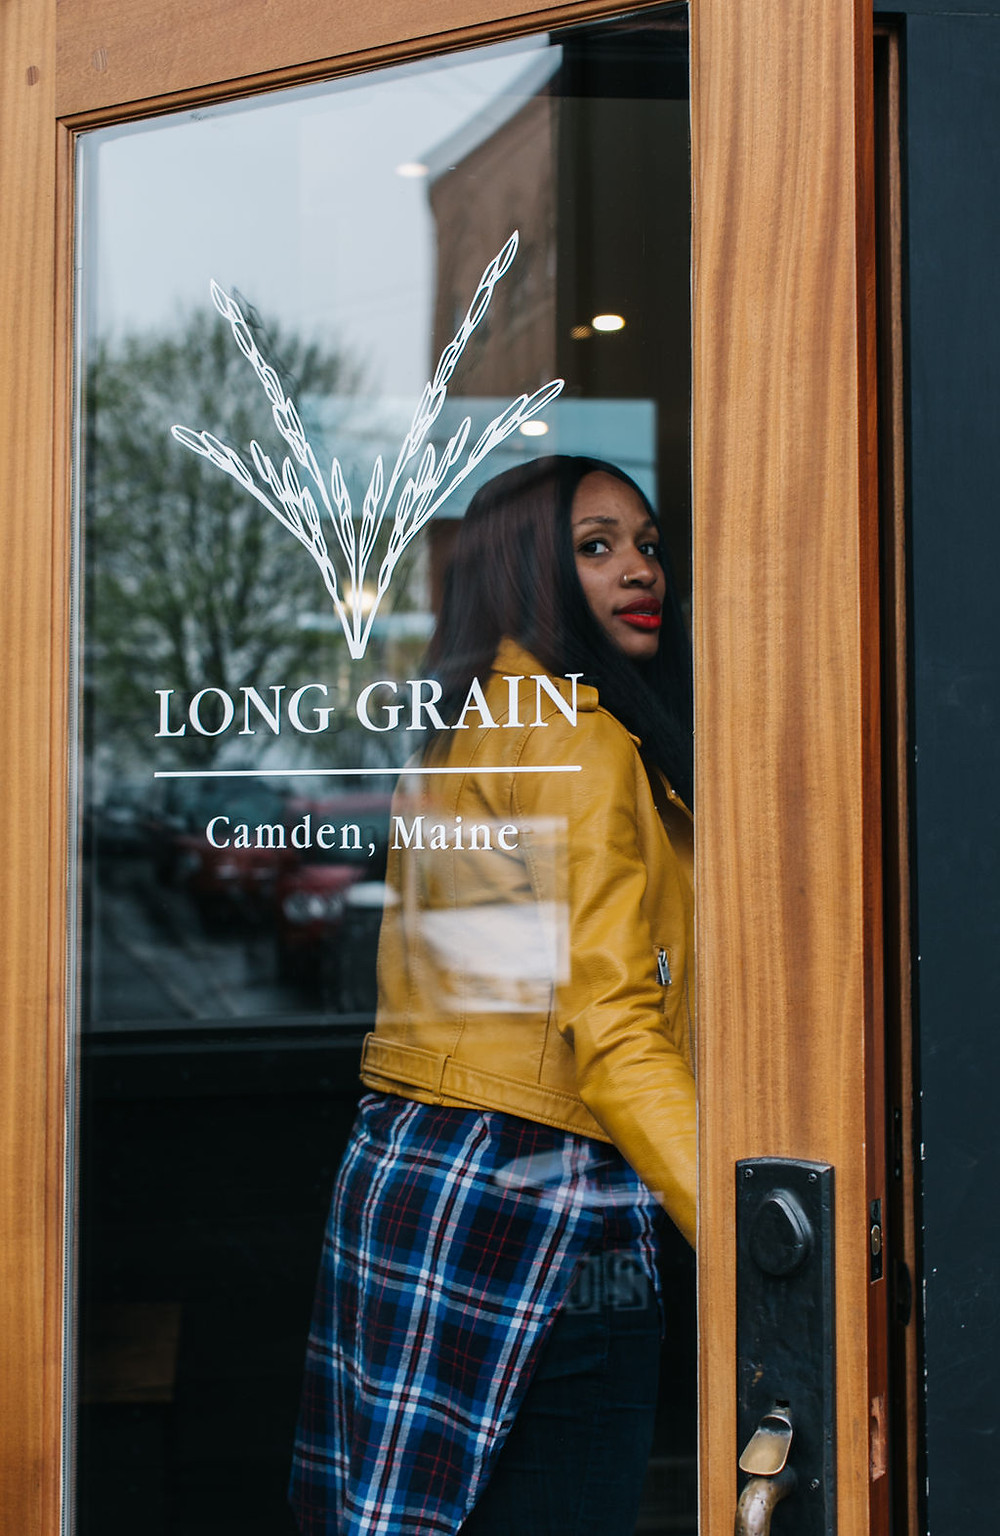 Woman at Long Grain restaurant gazing out door.